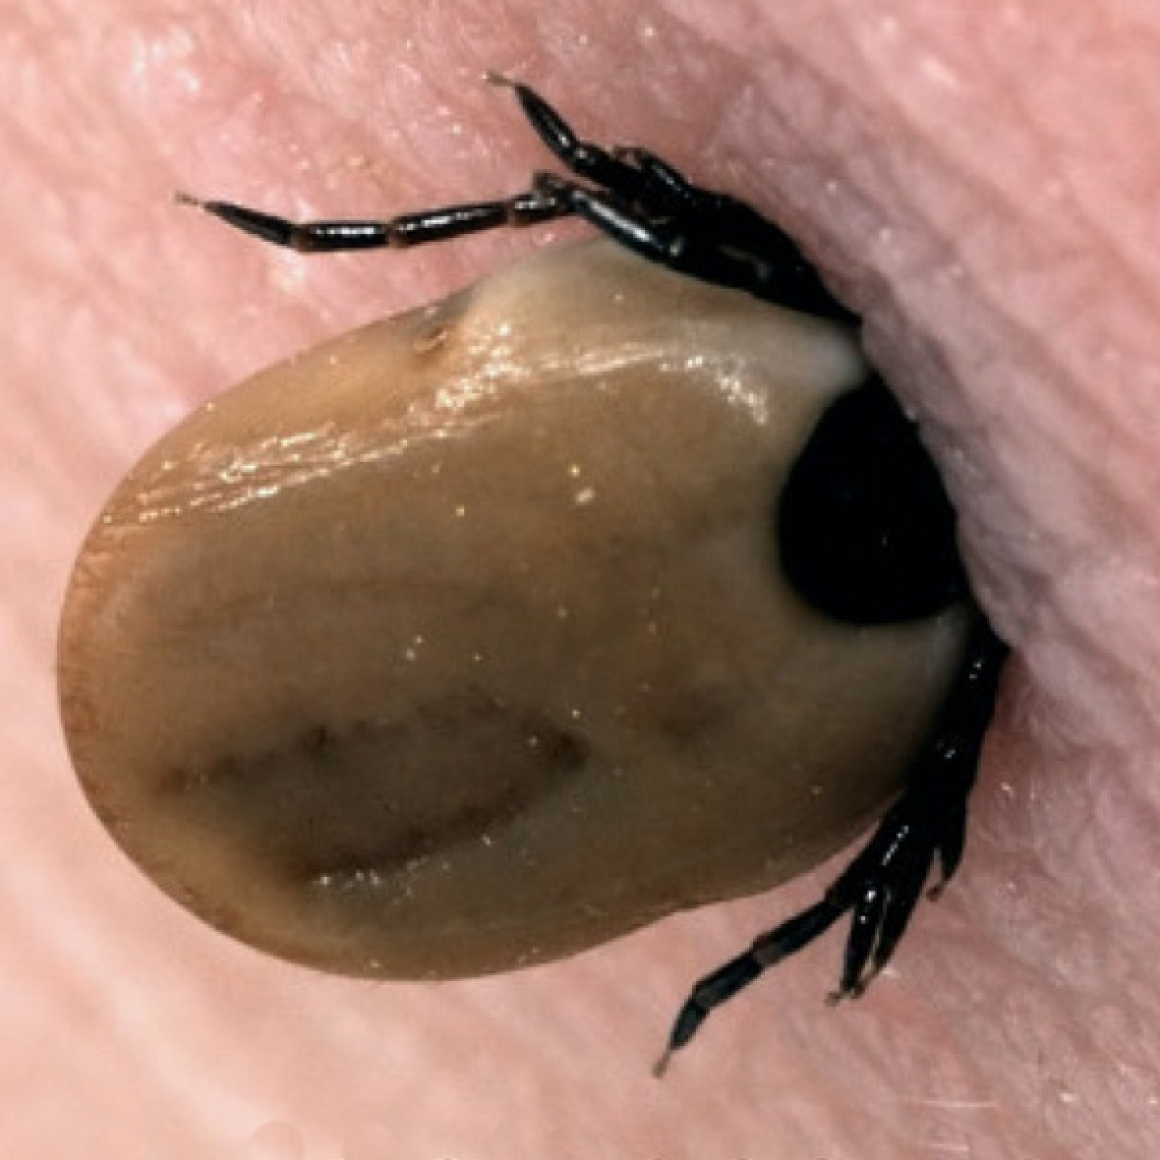 Guidelines for treating a tick bite